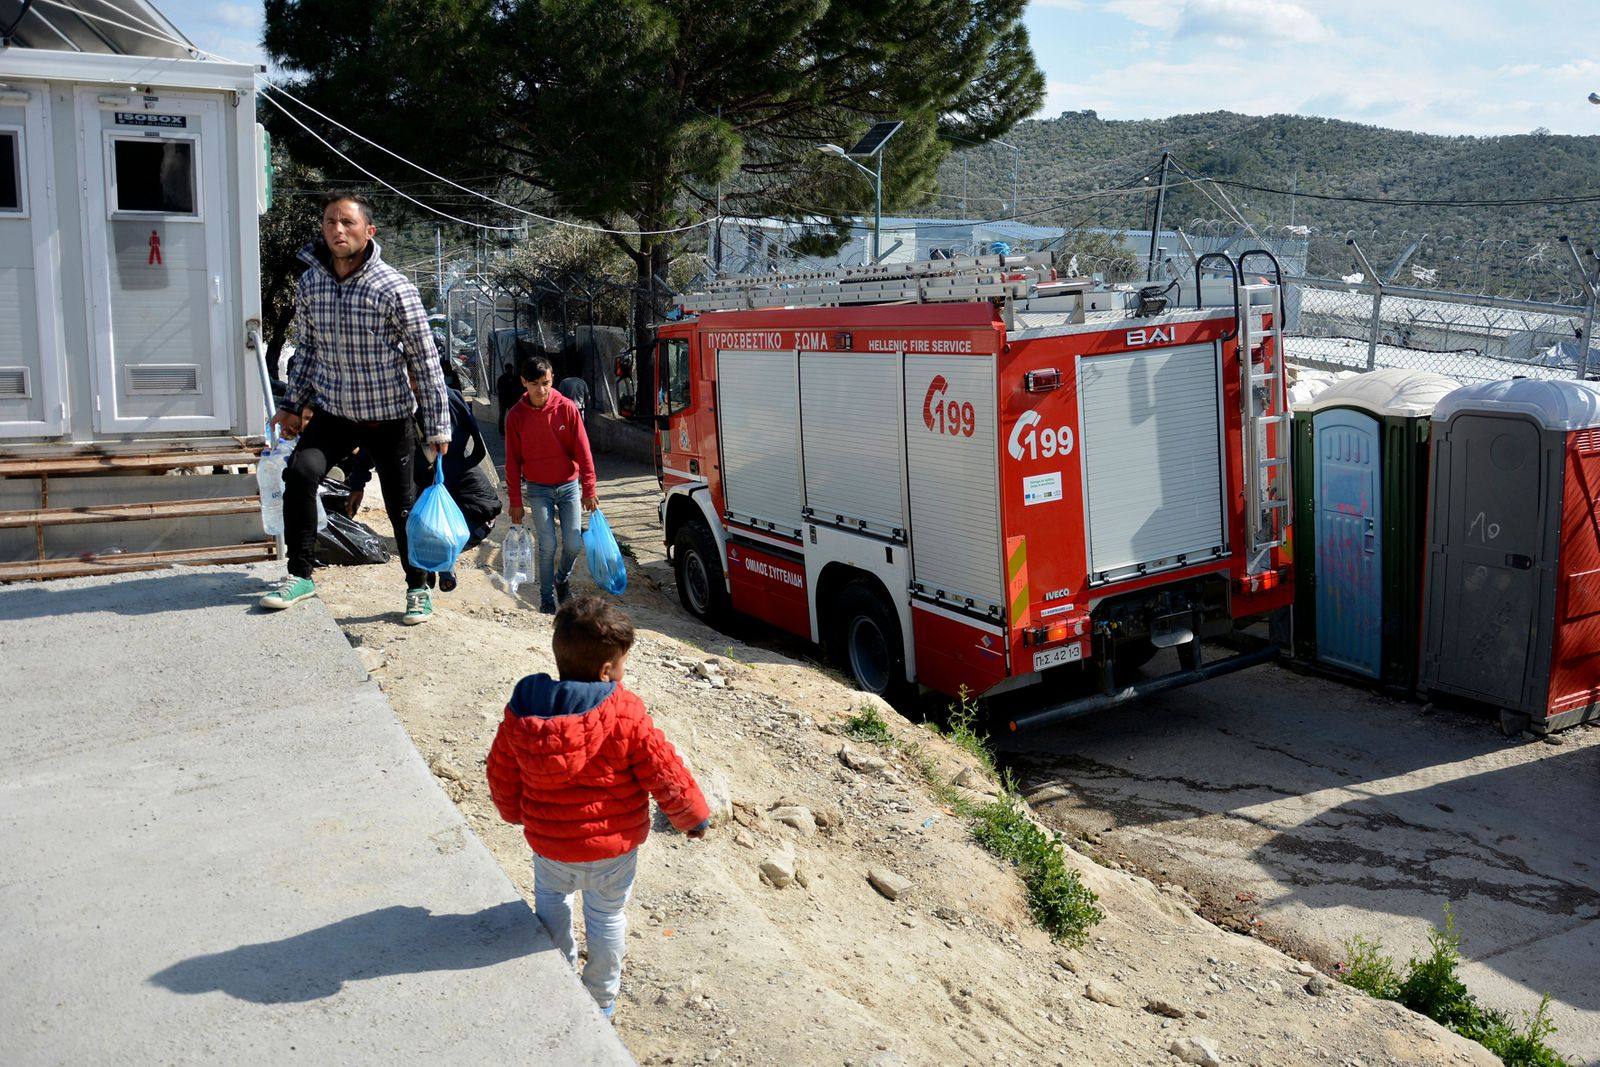 Six-year-old child found dead after Moria fire, Greece - 16 Mar 2020